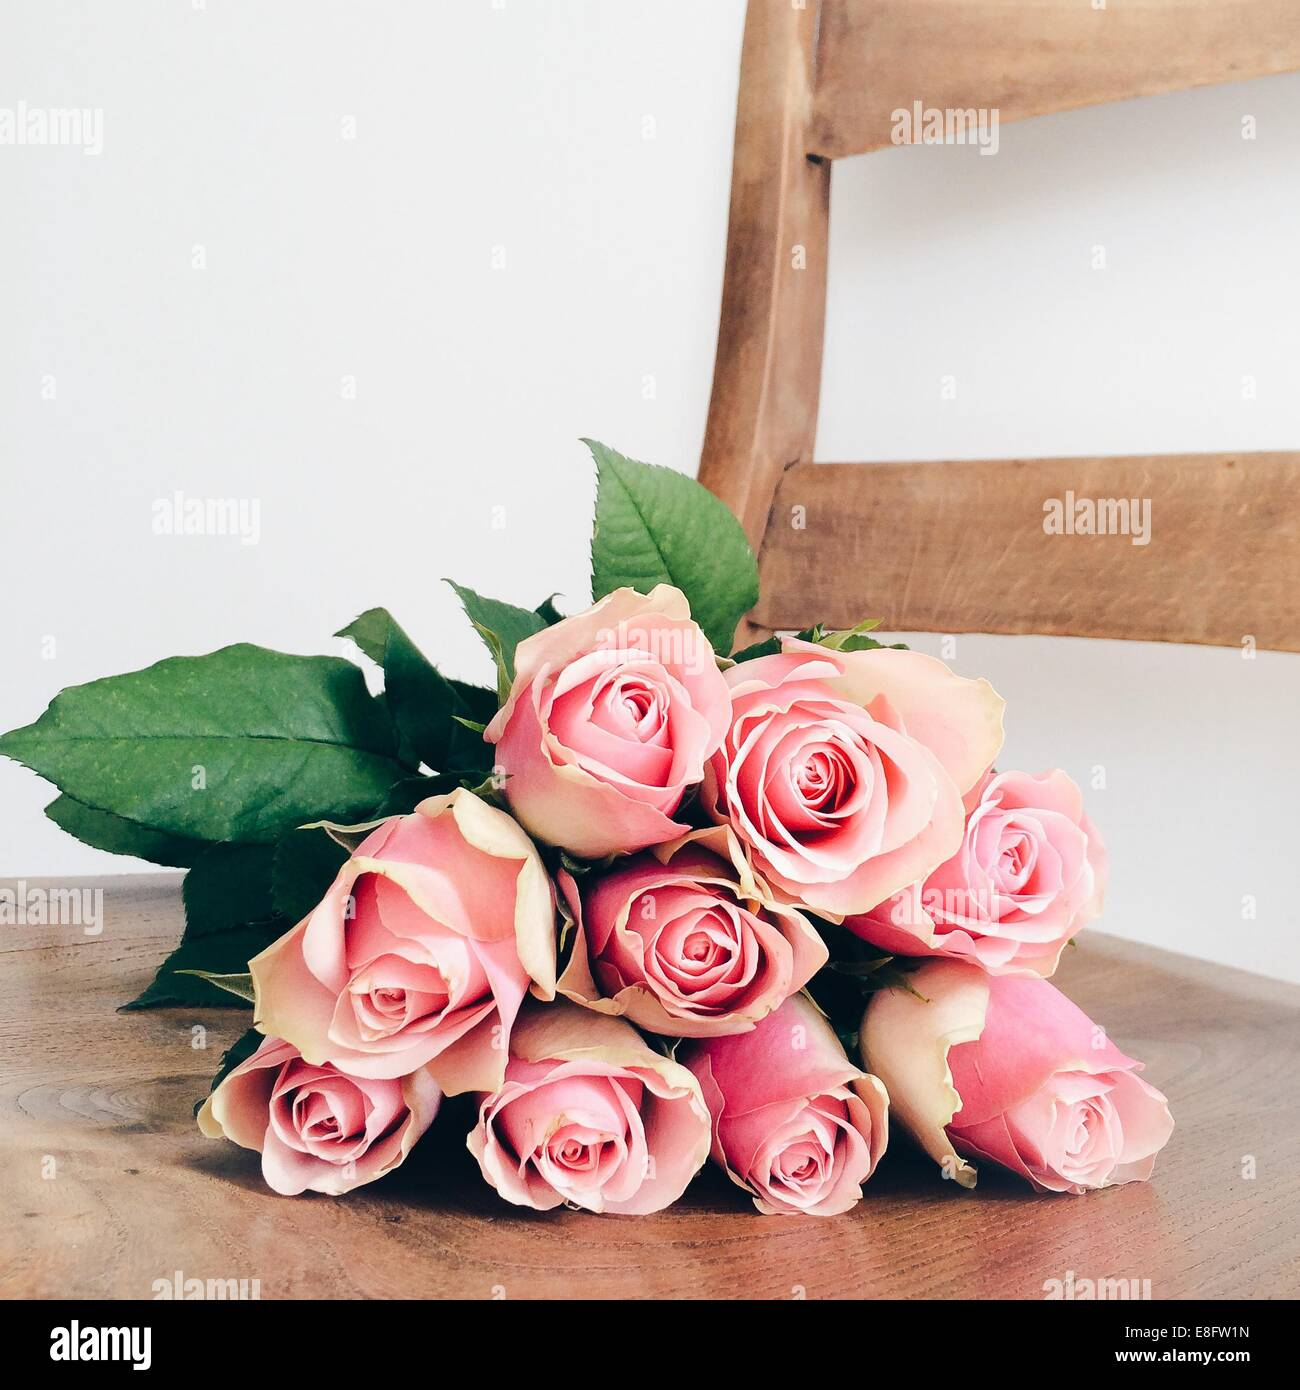 Bouquet of Pink roses lying on chair - Stock Image